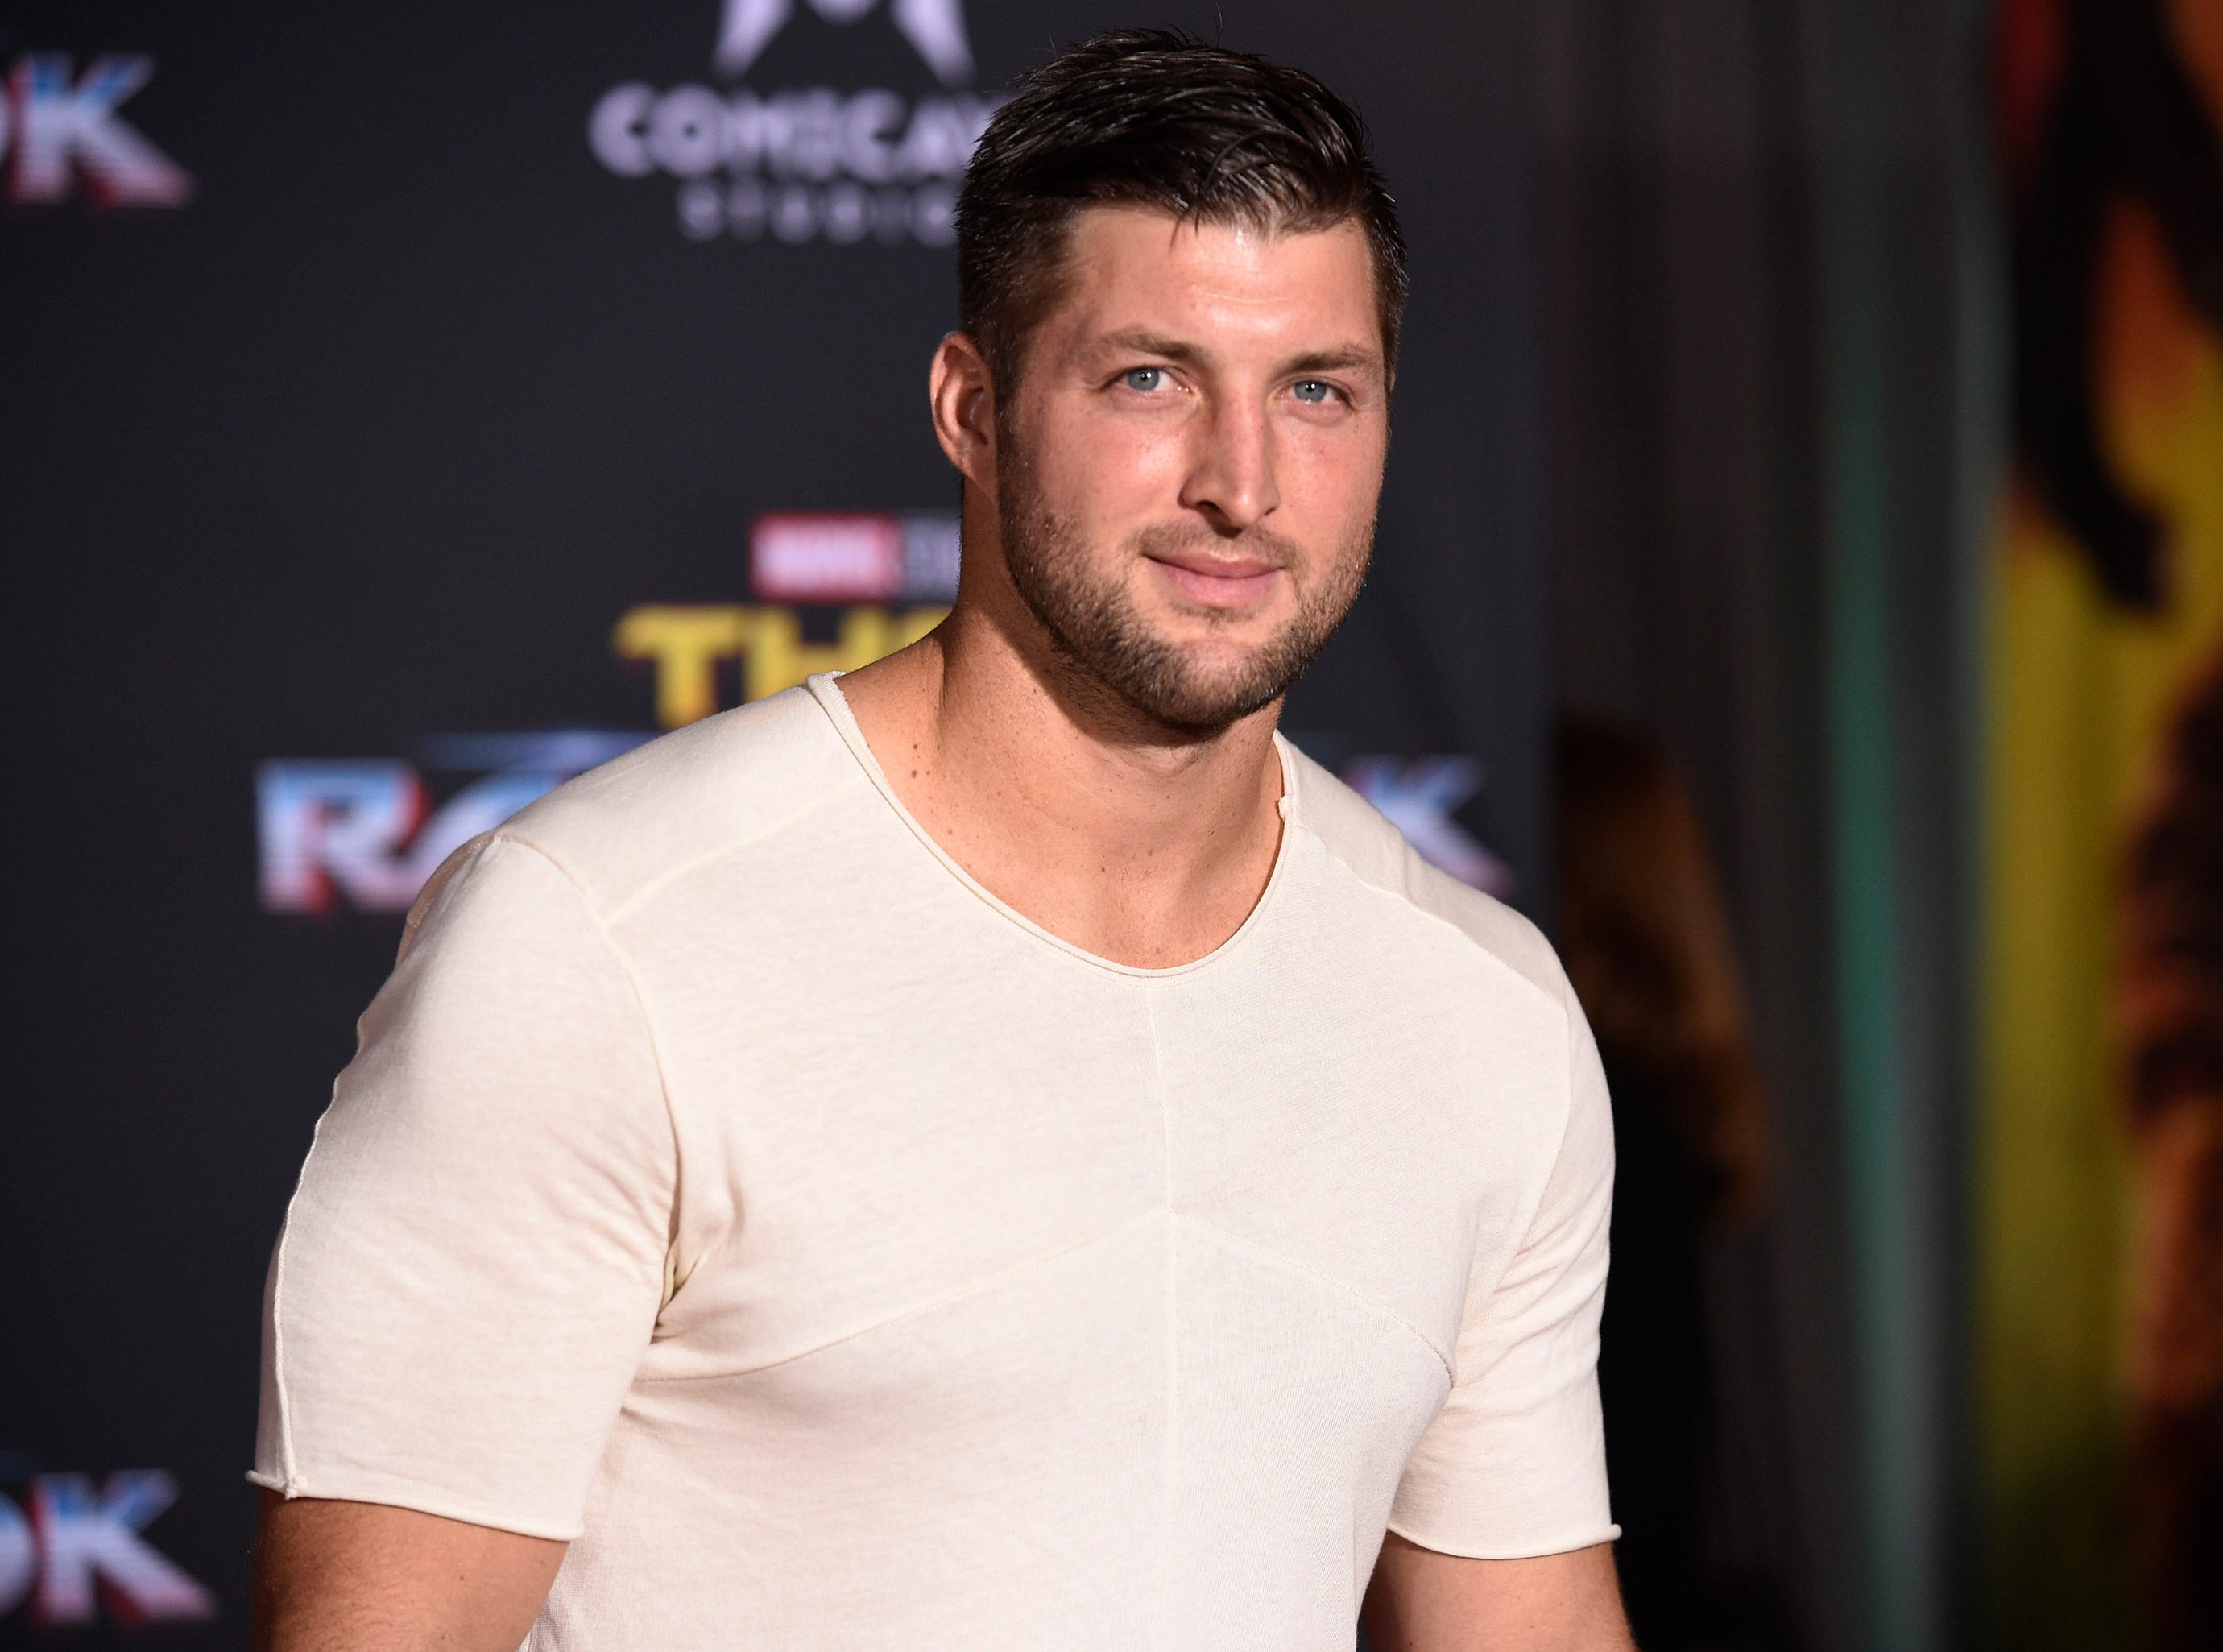 """In this Tuesday, Oct. 10, 2017 file photo, Tim Tebow arrives at the world premiere of """"Thor: Ragnarok"""" at the El Capitan Theatre in Los Angeles. The former Denver Broncos and University of Florida quarterback announced his engagement on Instagram on Thursday, Jan. 10, 2019 to Demi-Leigh Nel-Peters, a South Africa native and the 2017 Miss Universe."""